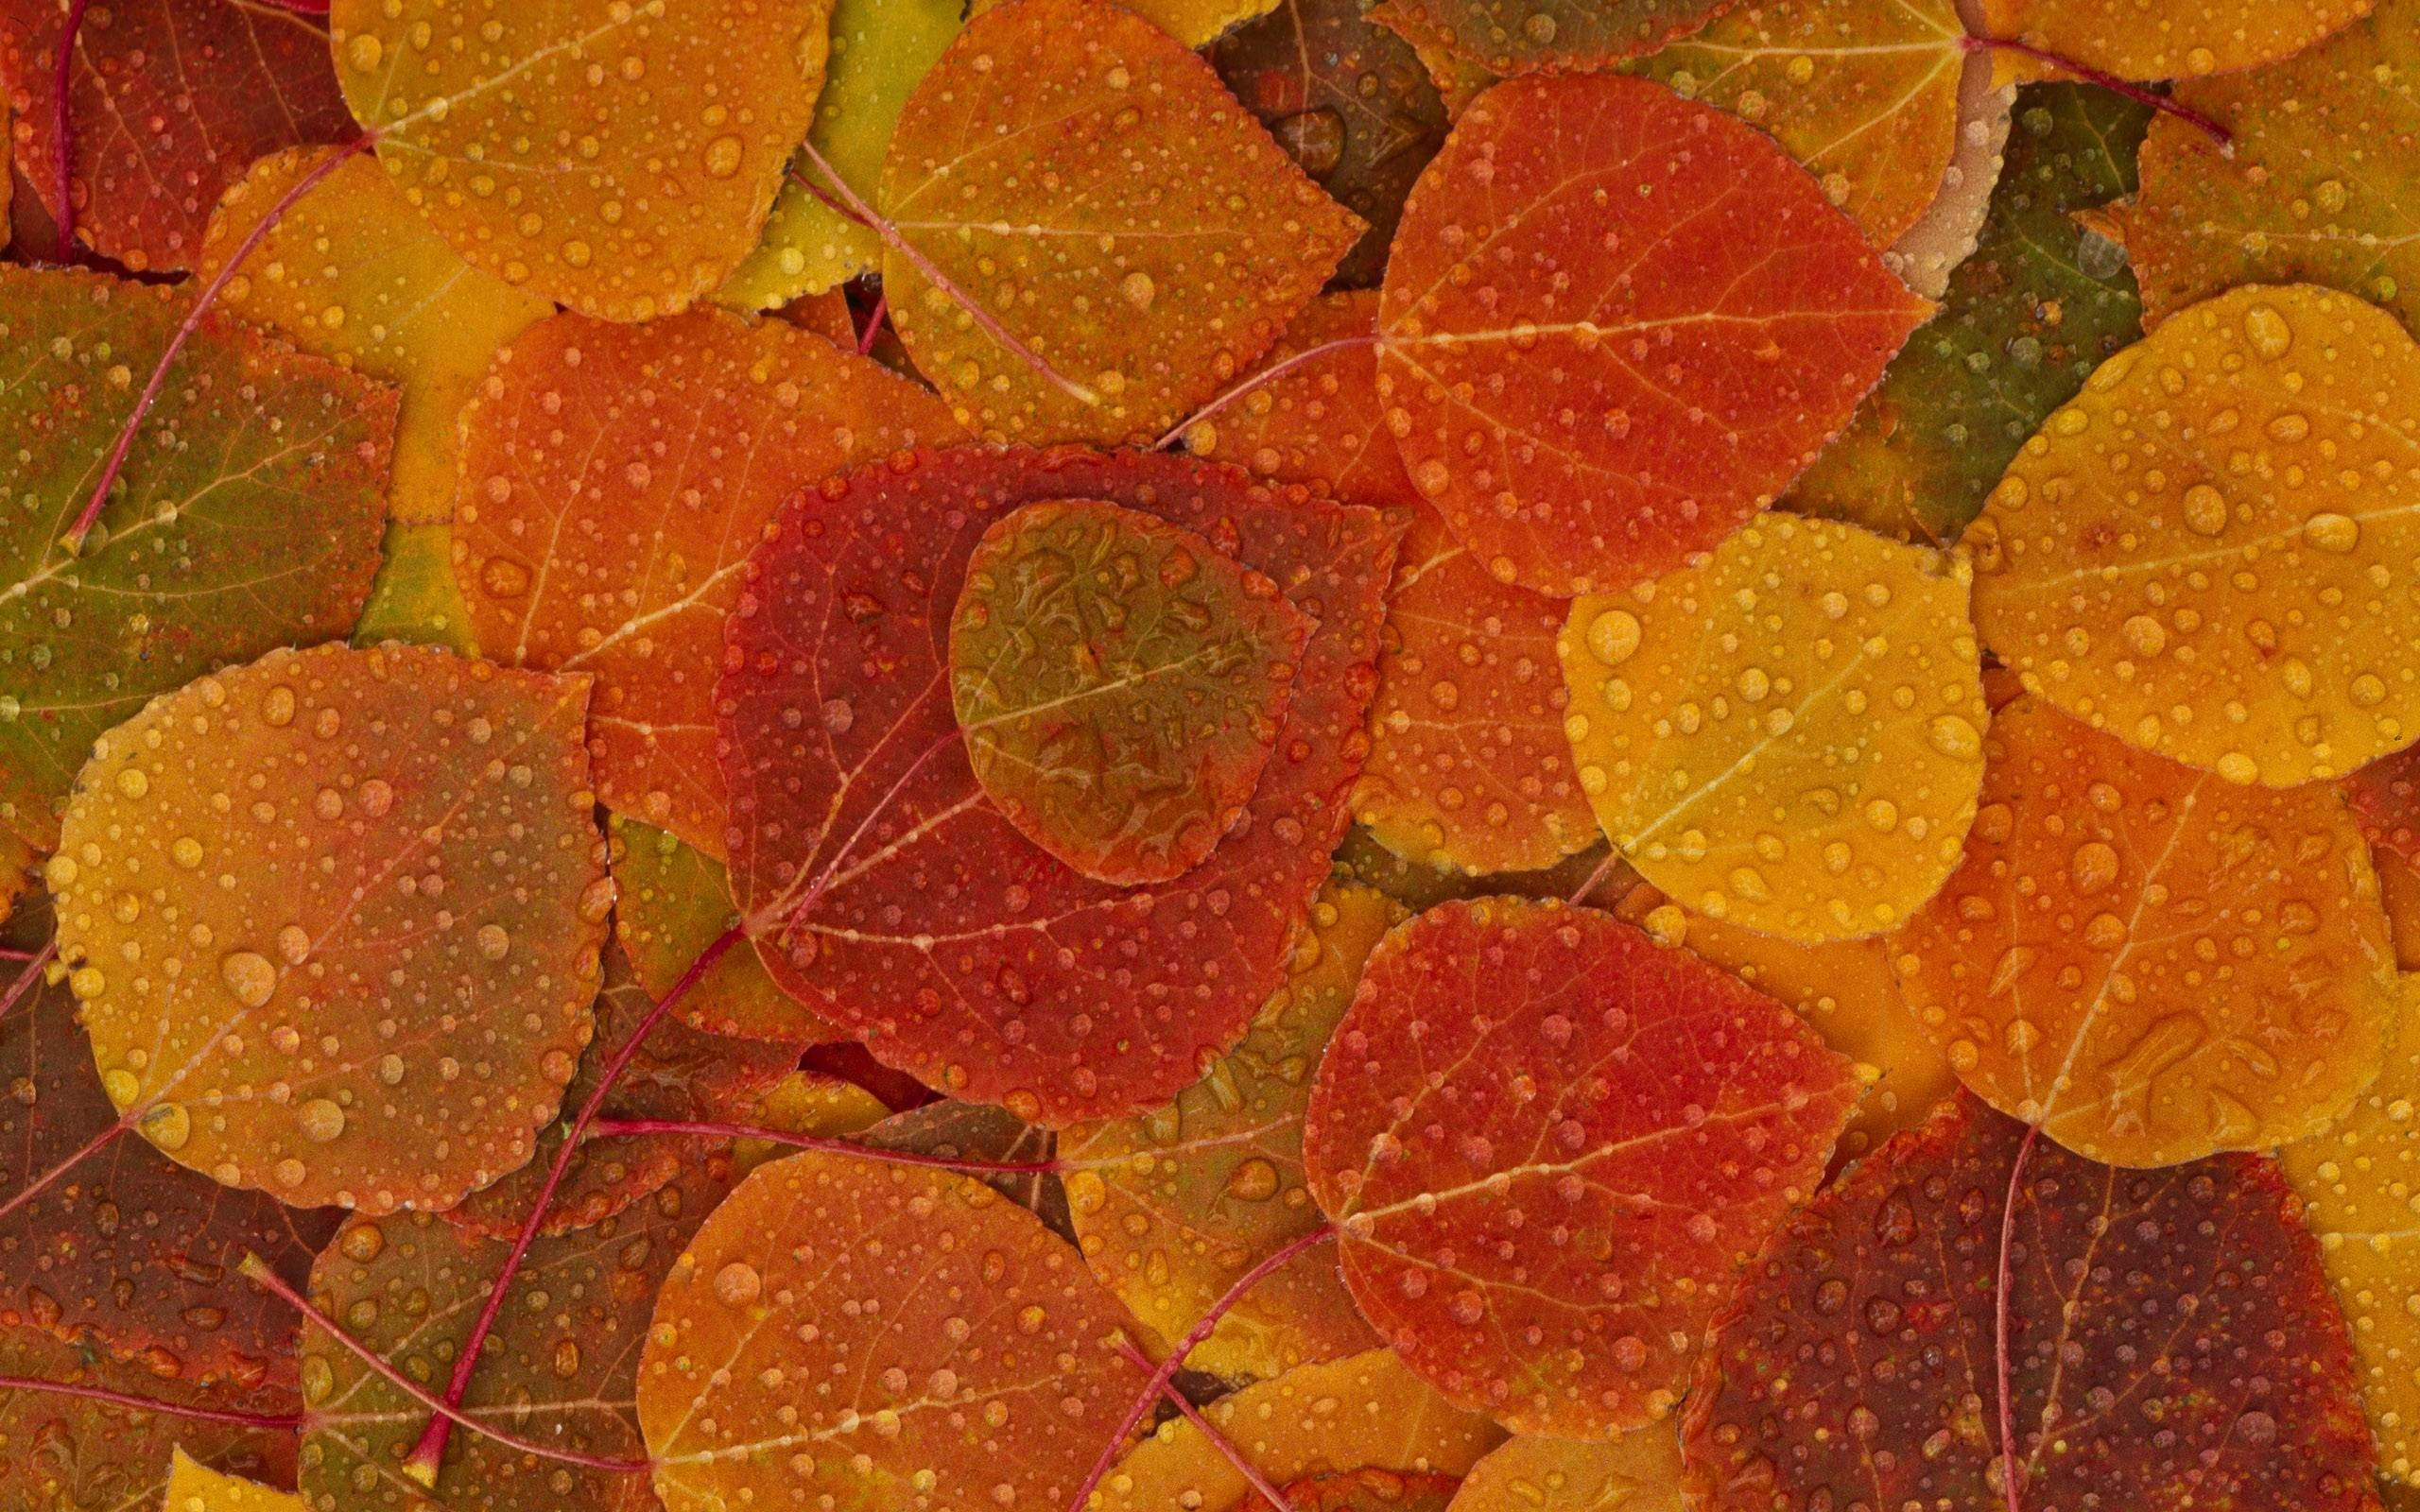 2560x1600 Aspen Leaves Wallpaper Autumn Nature Wallpapers in jpg format for